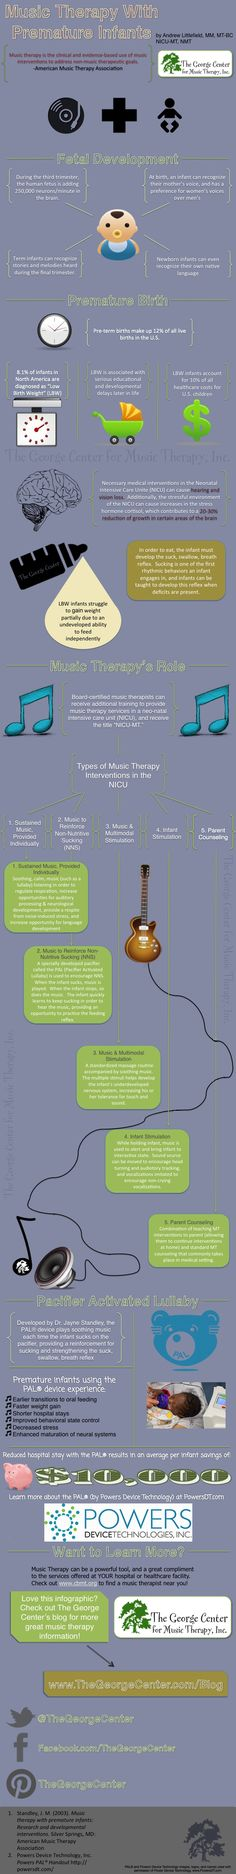 Music Therapy and Premature Infants